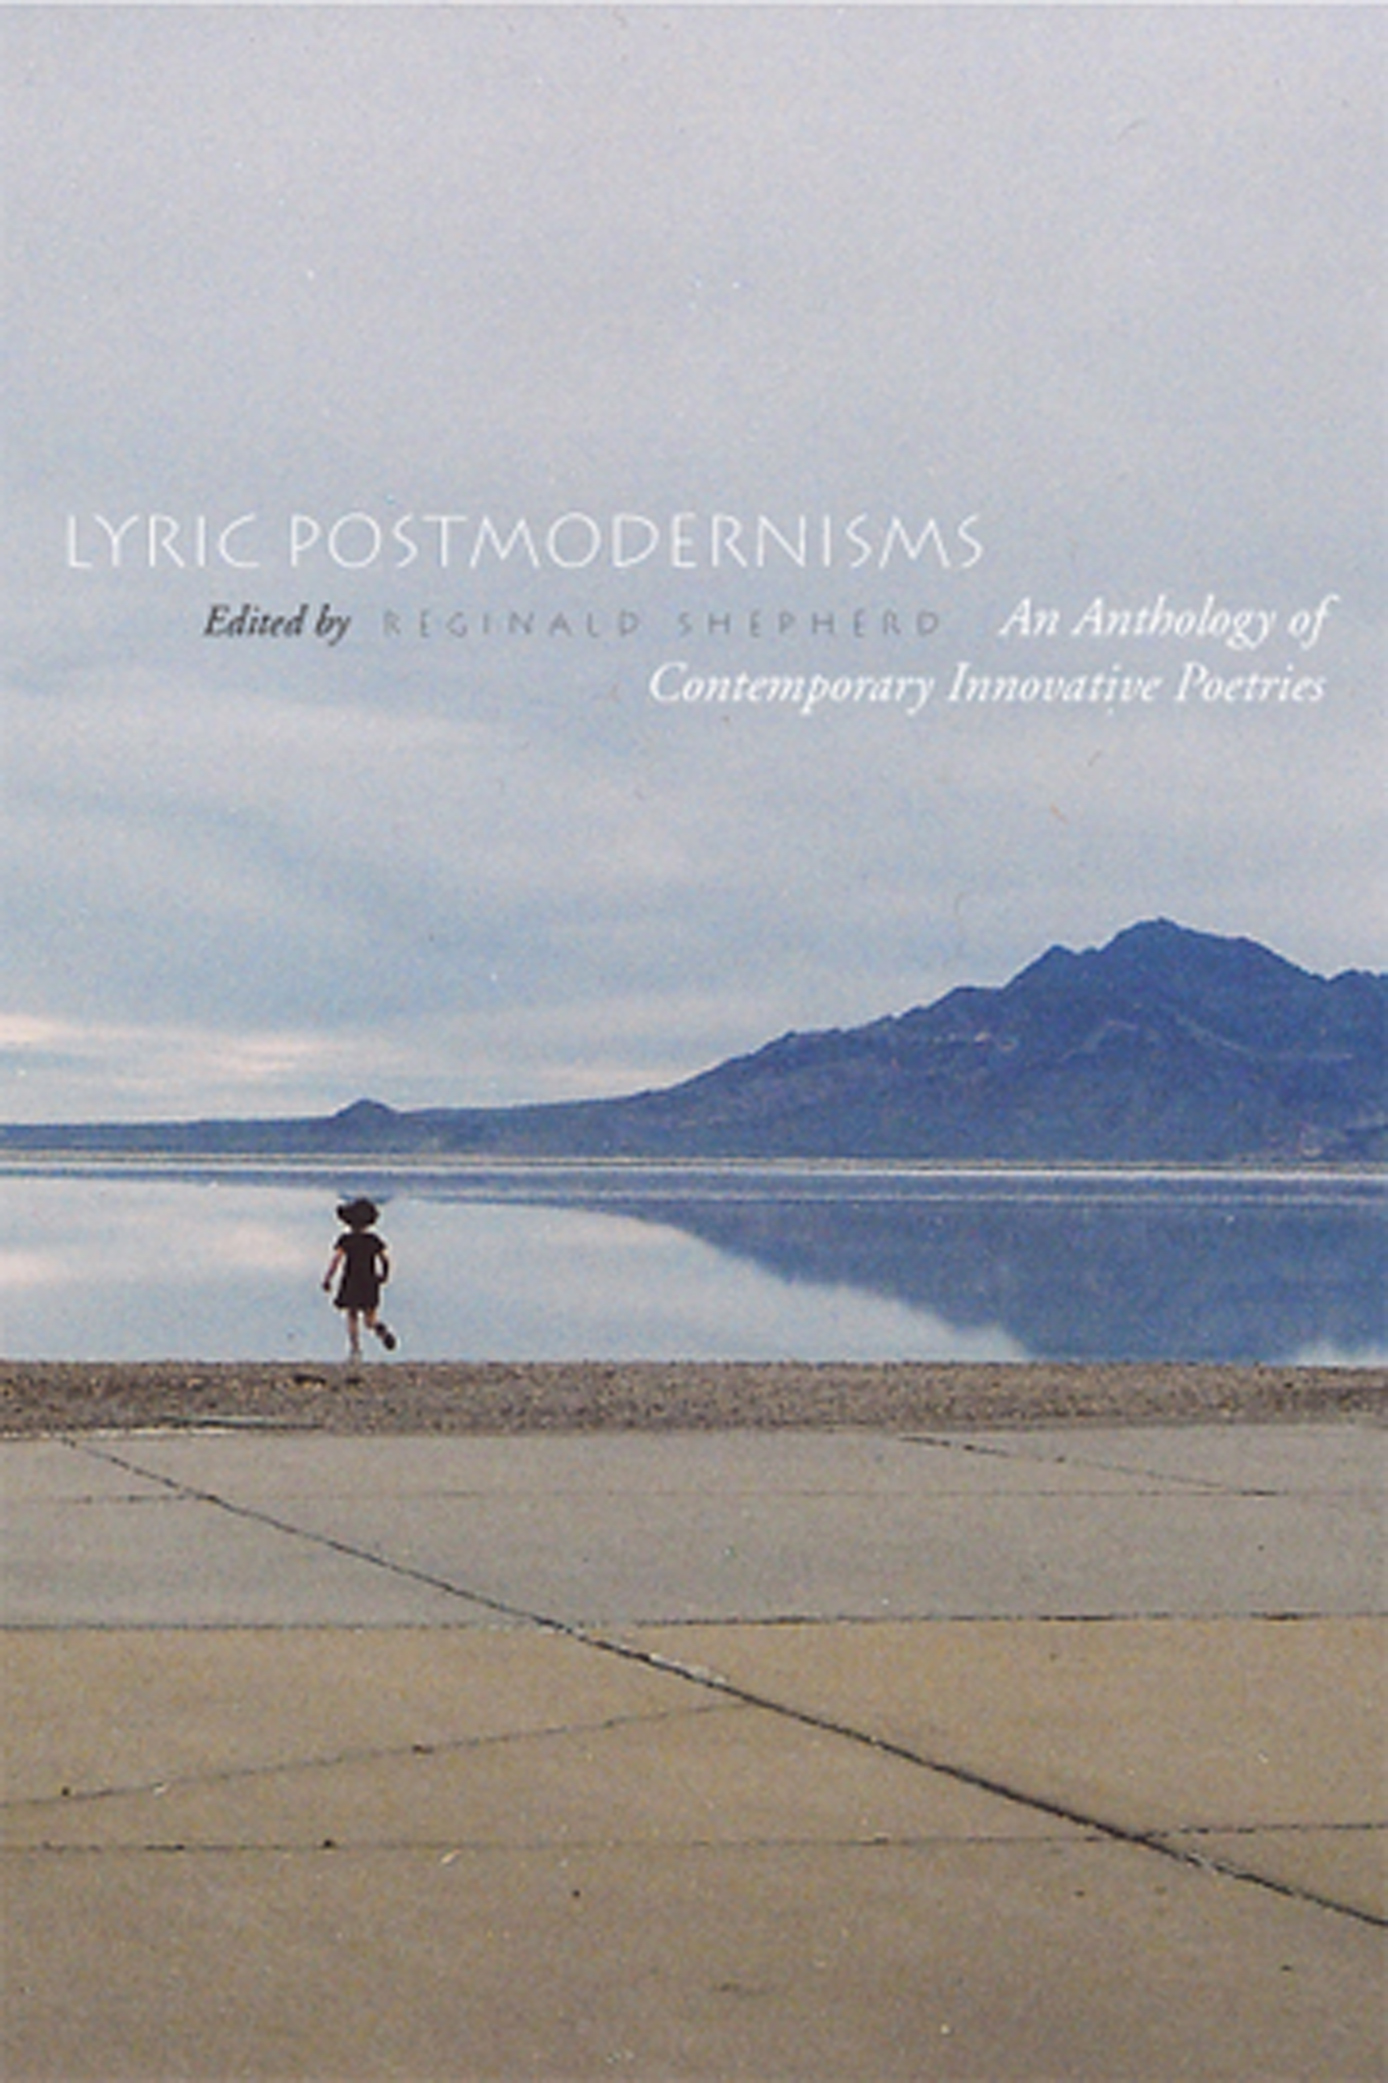 Lyric Postmodernisms: An Anthology of Contemporary Innovative Poetriesedited by Reginald Shepherd